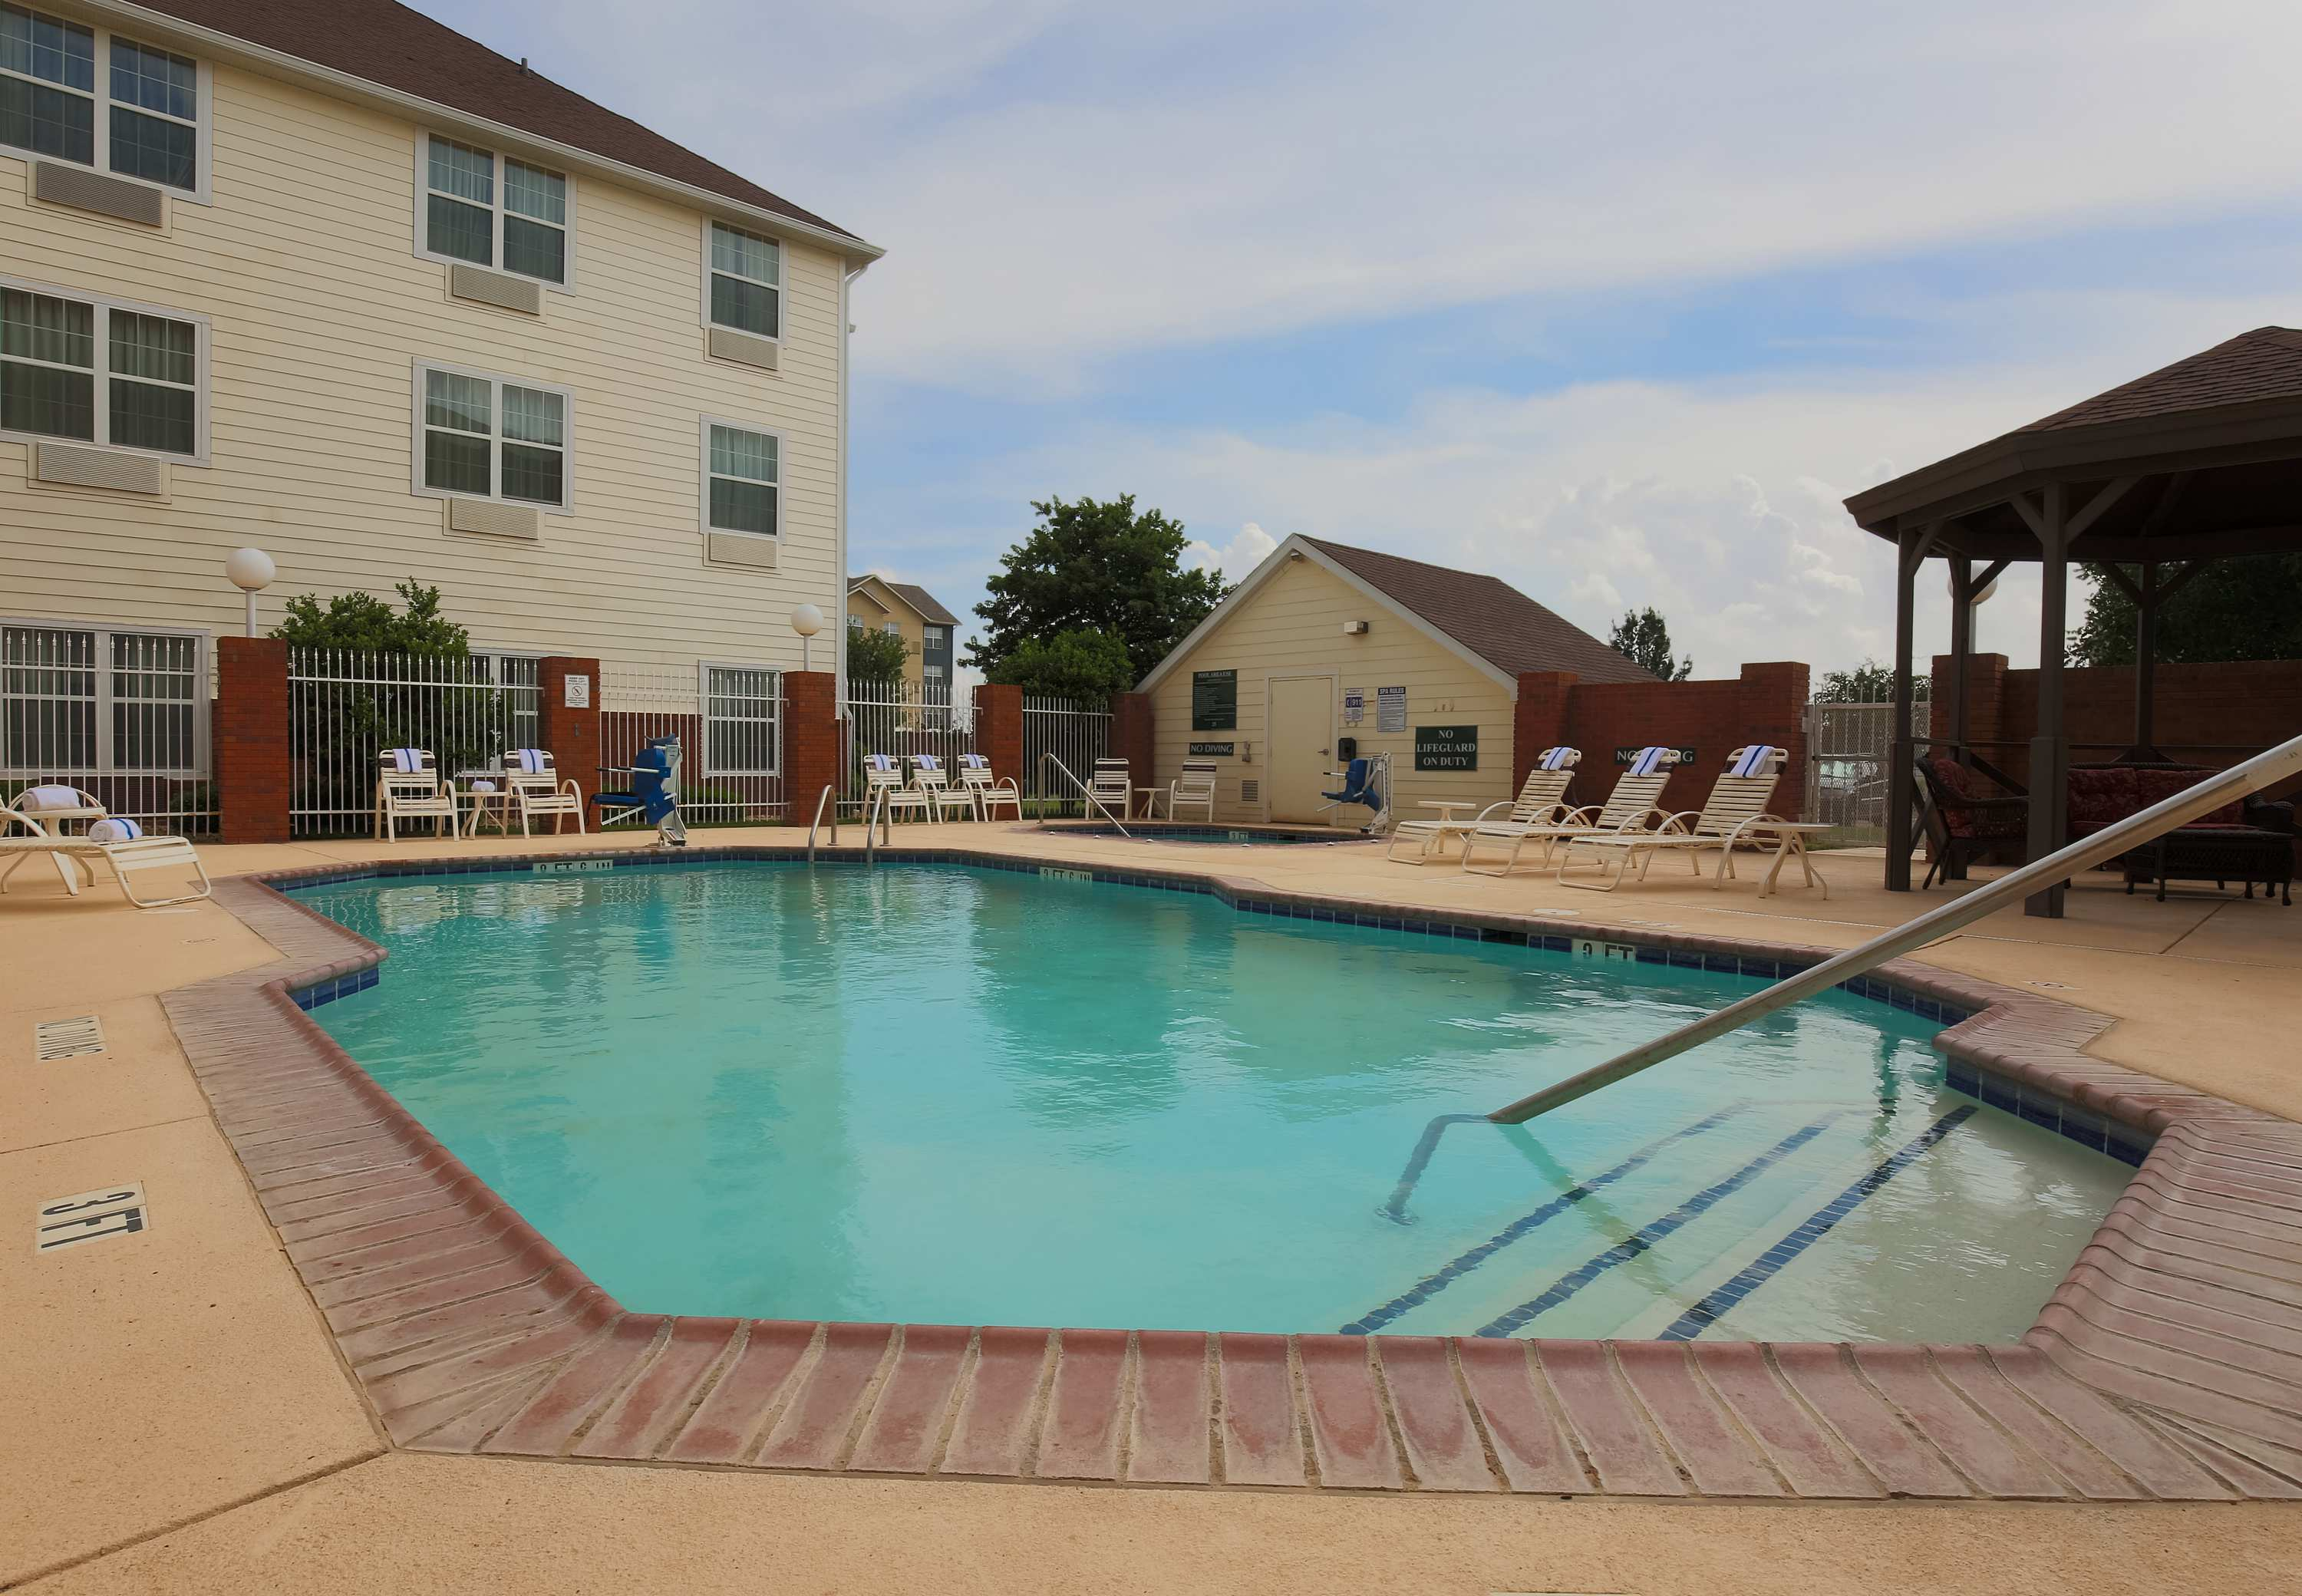 TownePlace Suites by Marriott Lubbock image 11